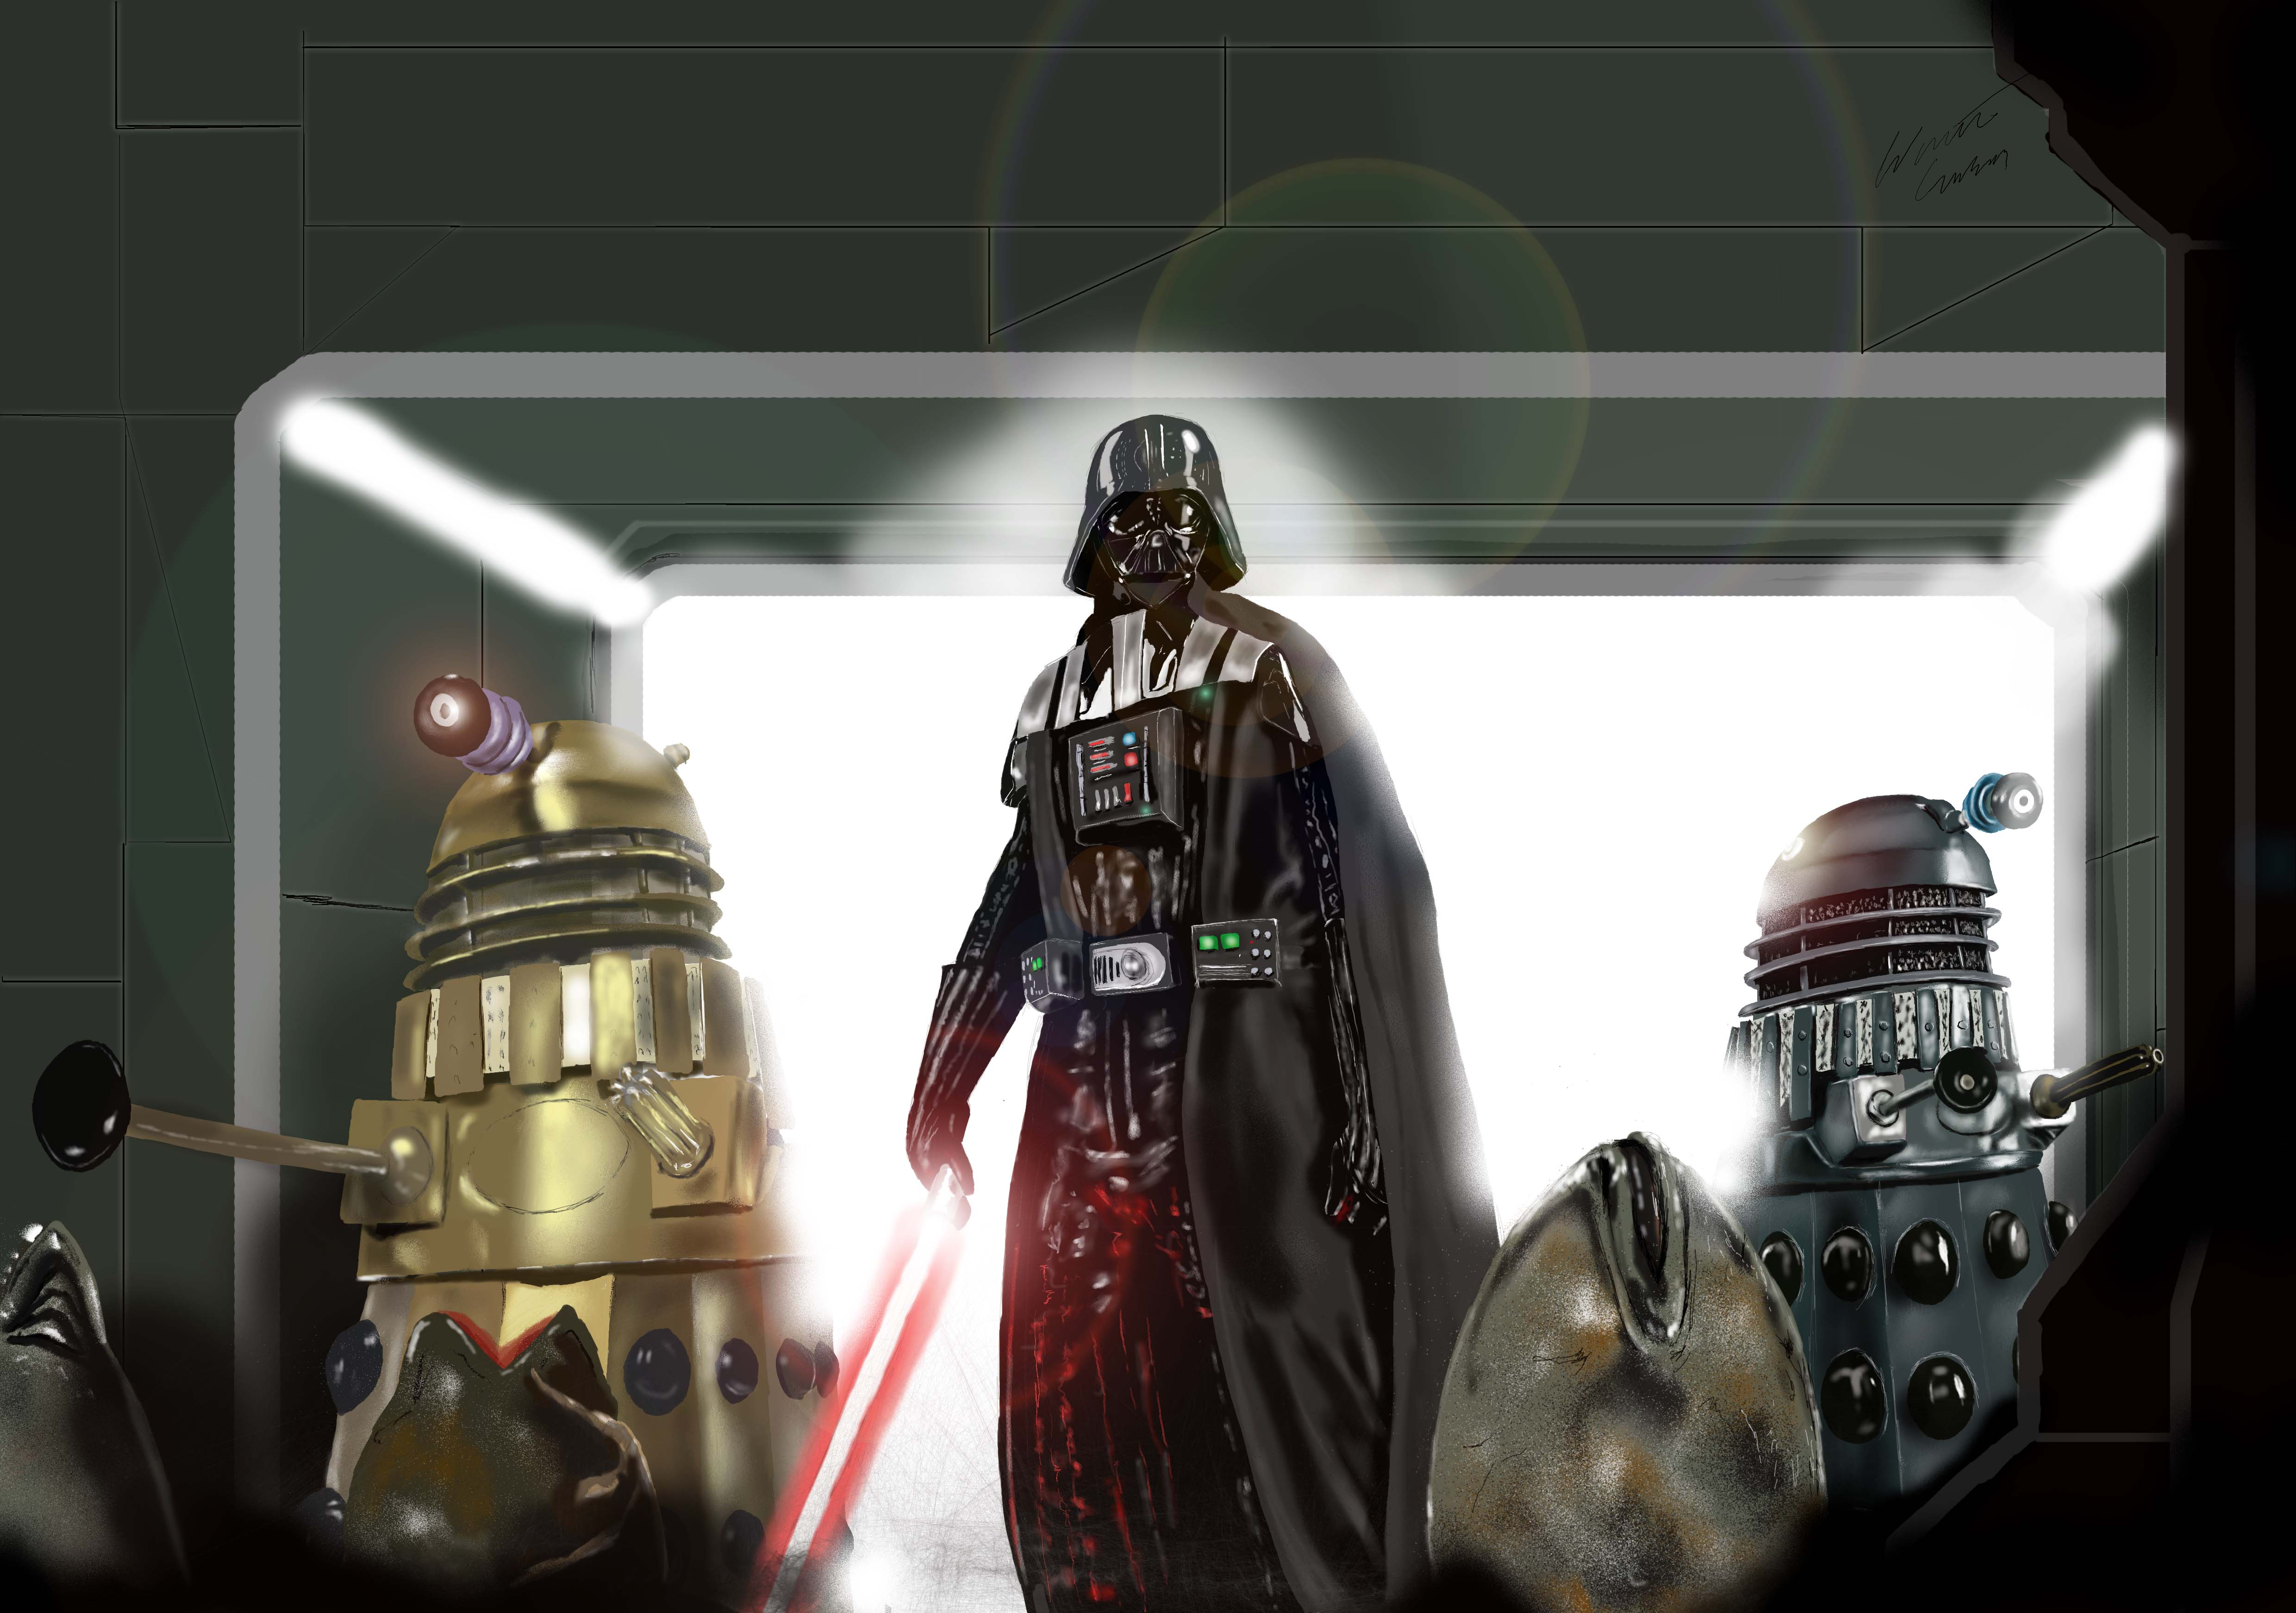 Darth Vader, Darlek, Darleks, Sci-fi. Sci-fi Illustrations, Sith. Star Wars, Doctor Who